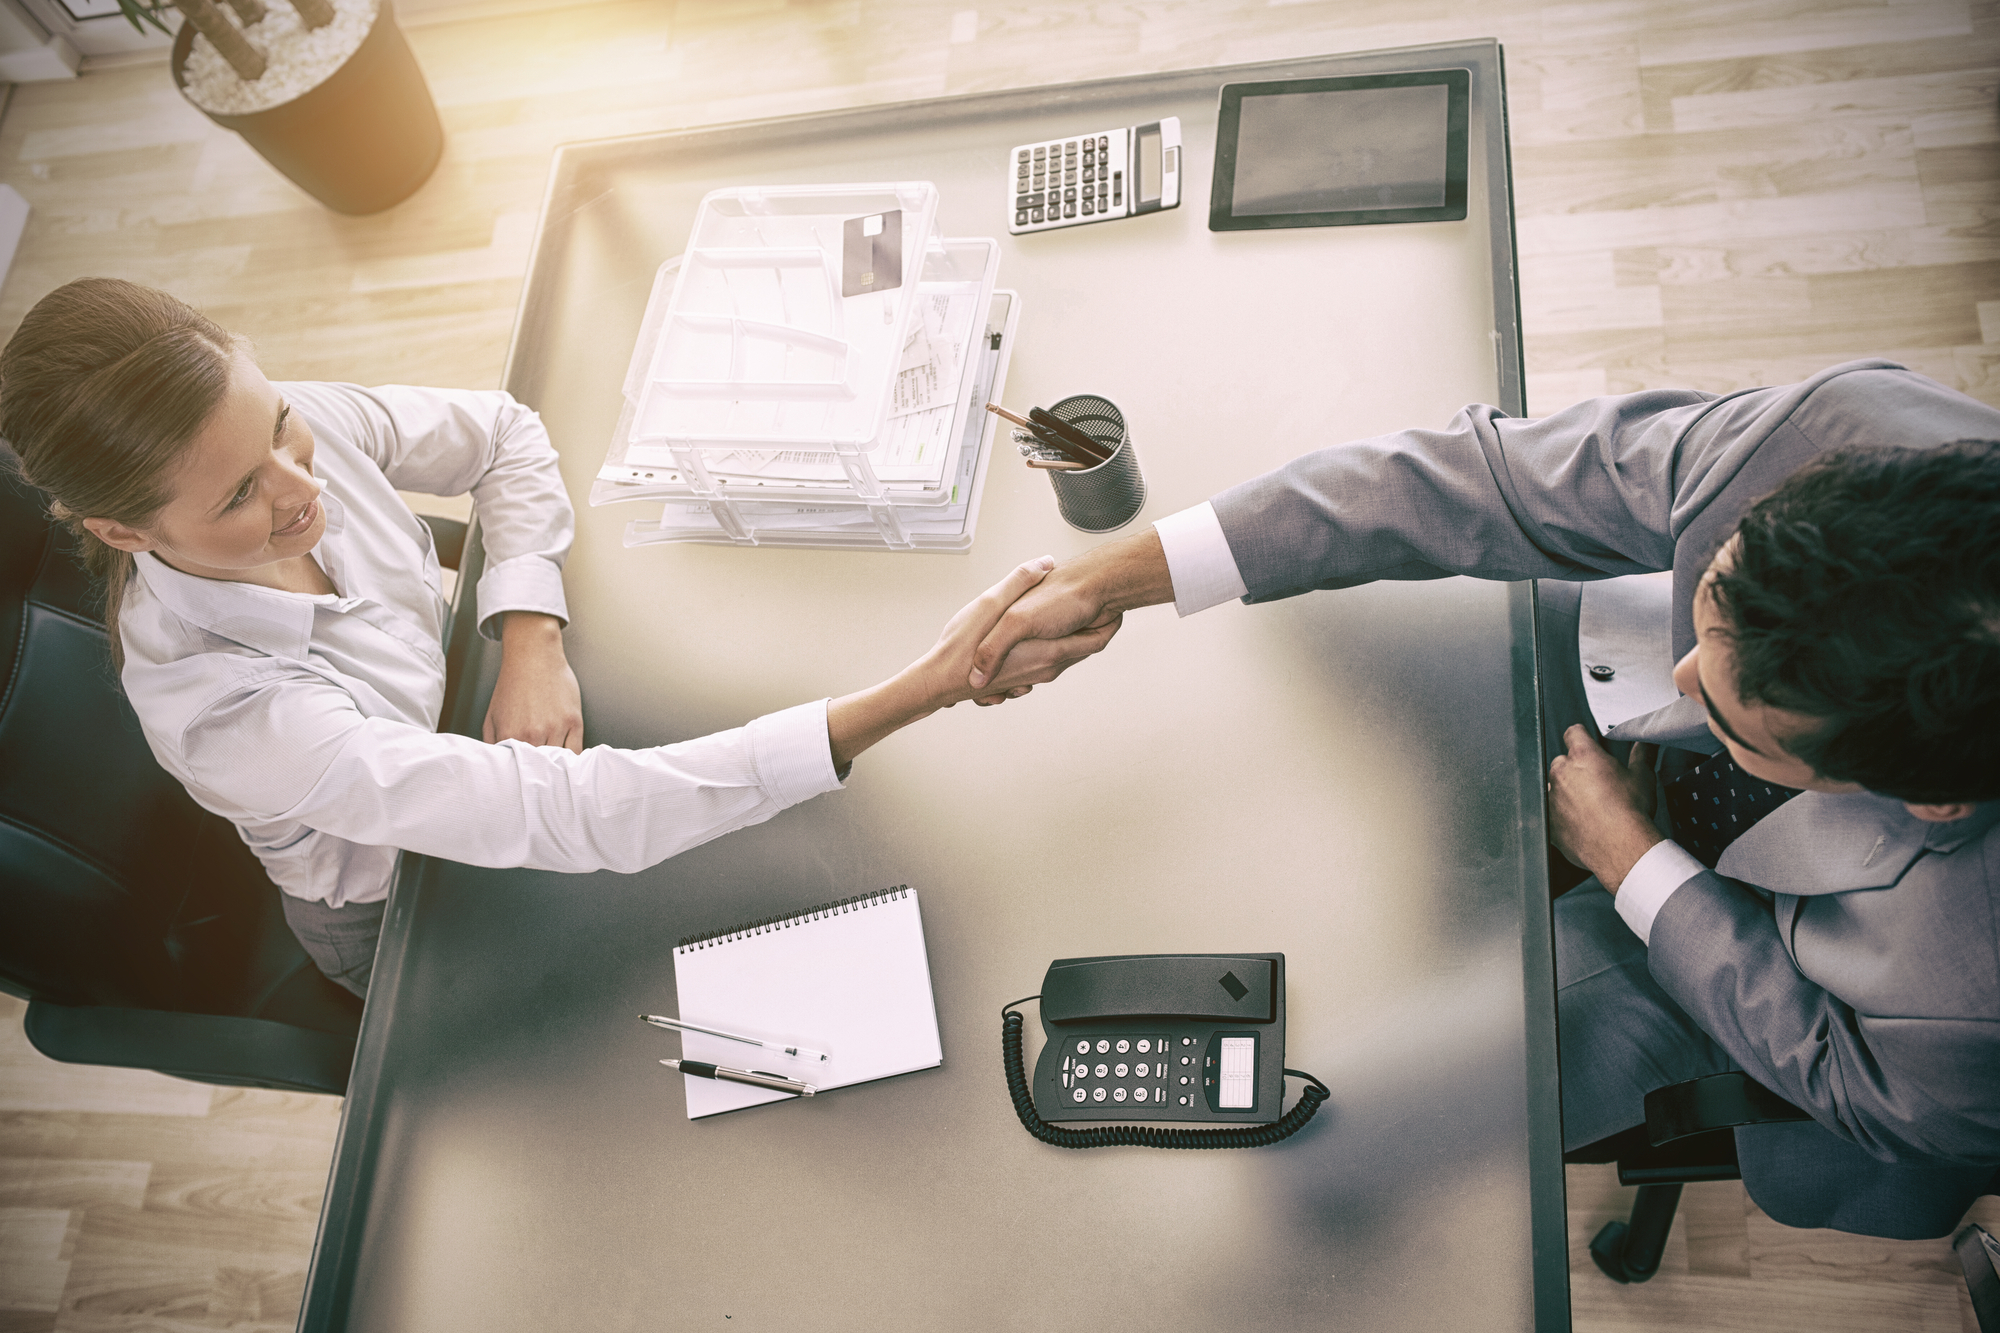 Consultant shaking hands with customer